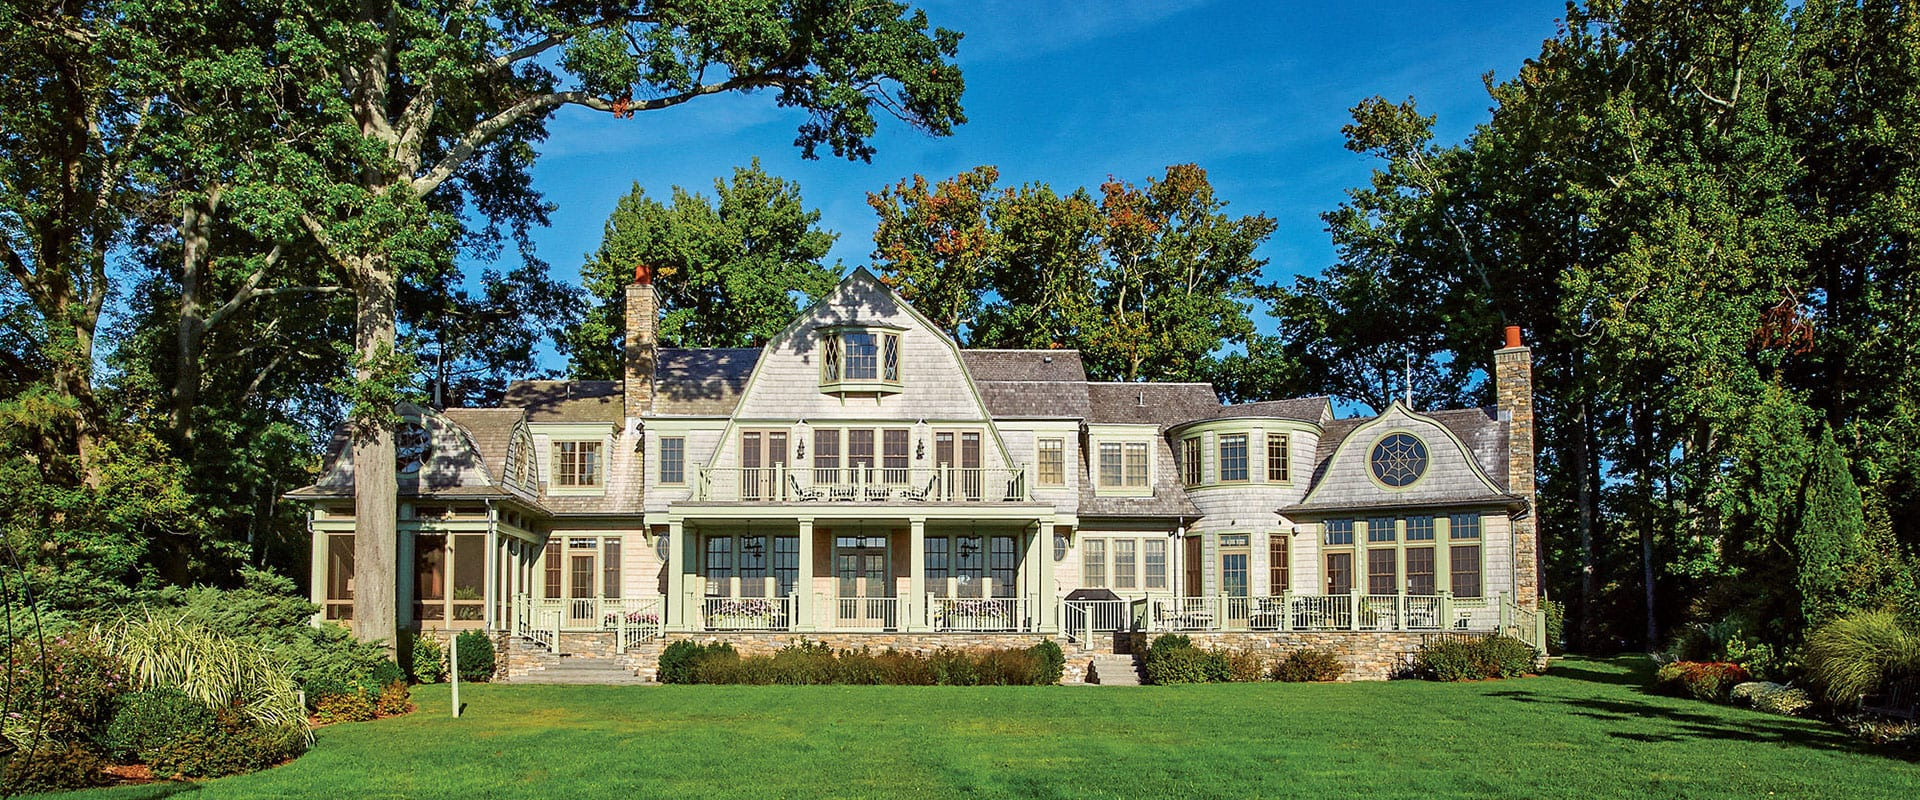 Shingle style home overlooking Long Island exterior view